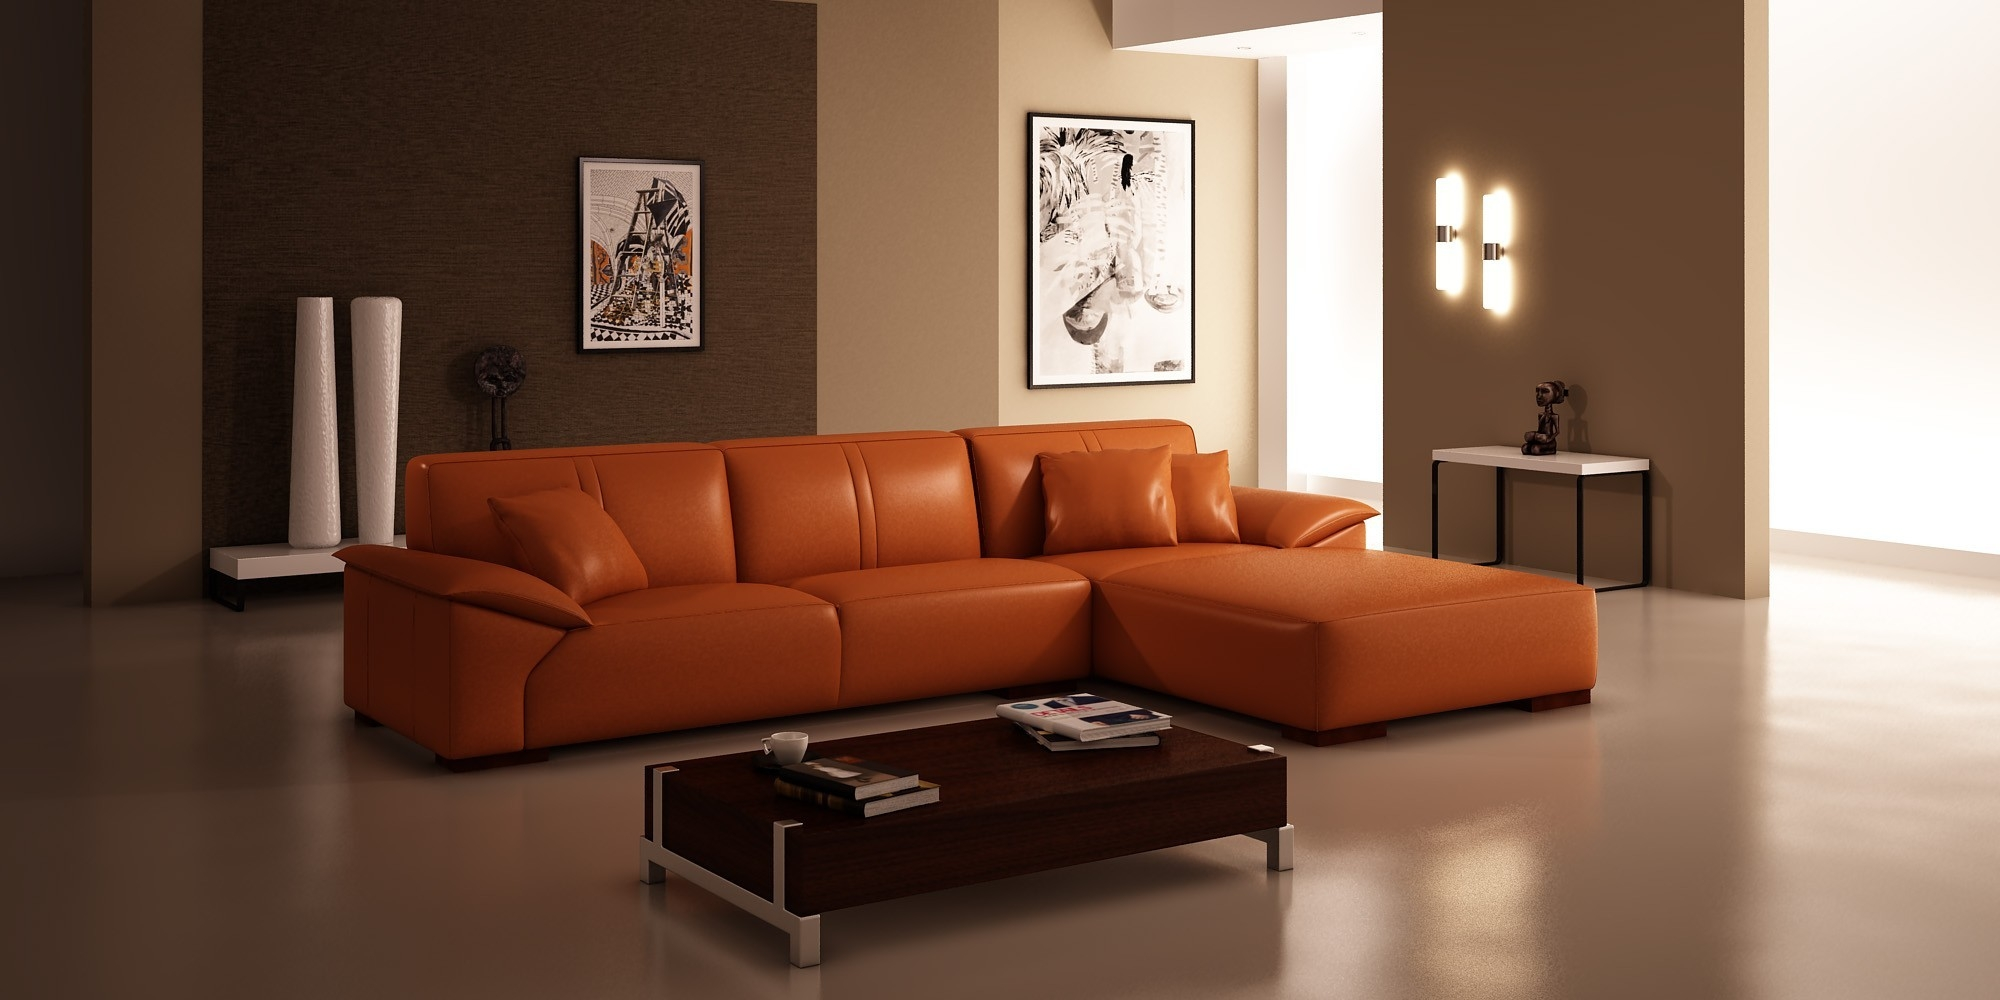 Good places for Bali 6Piece Living Room Furniture Set in